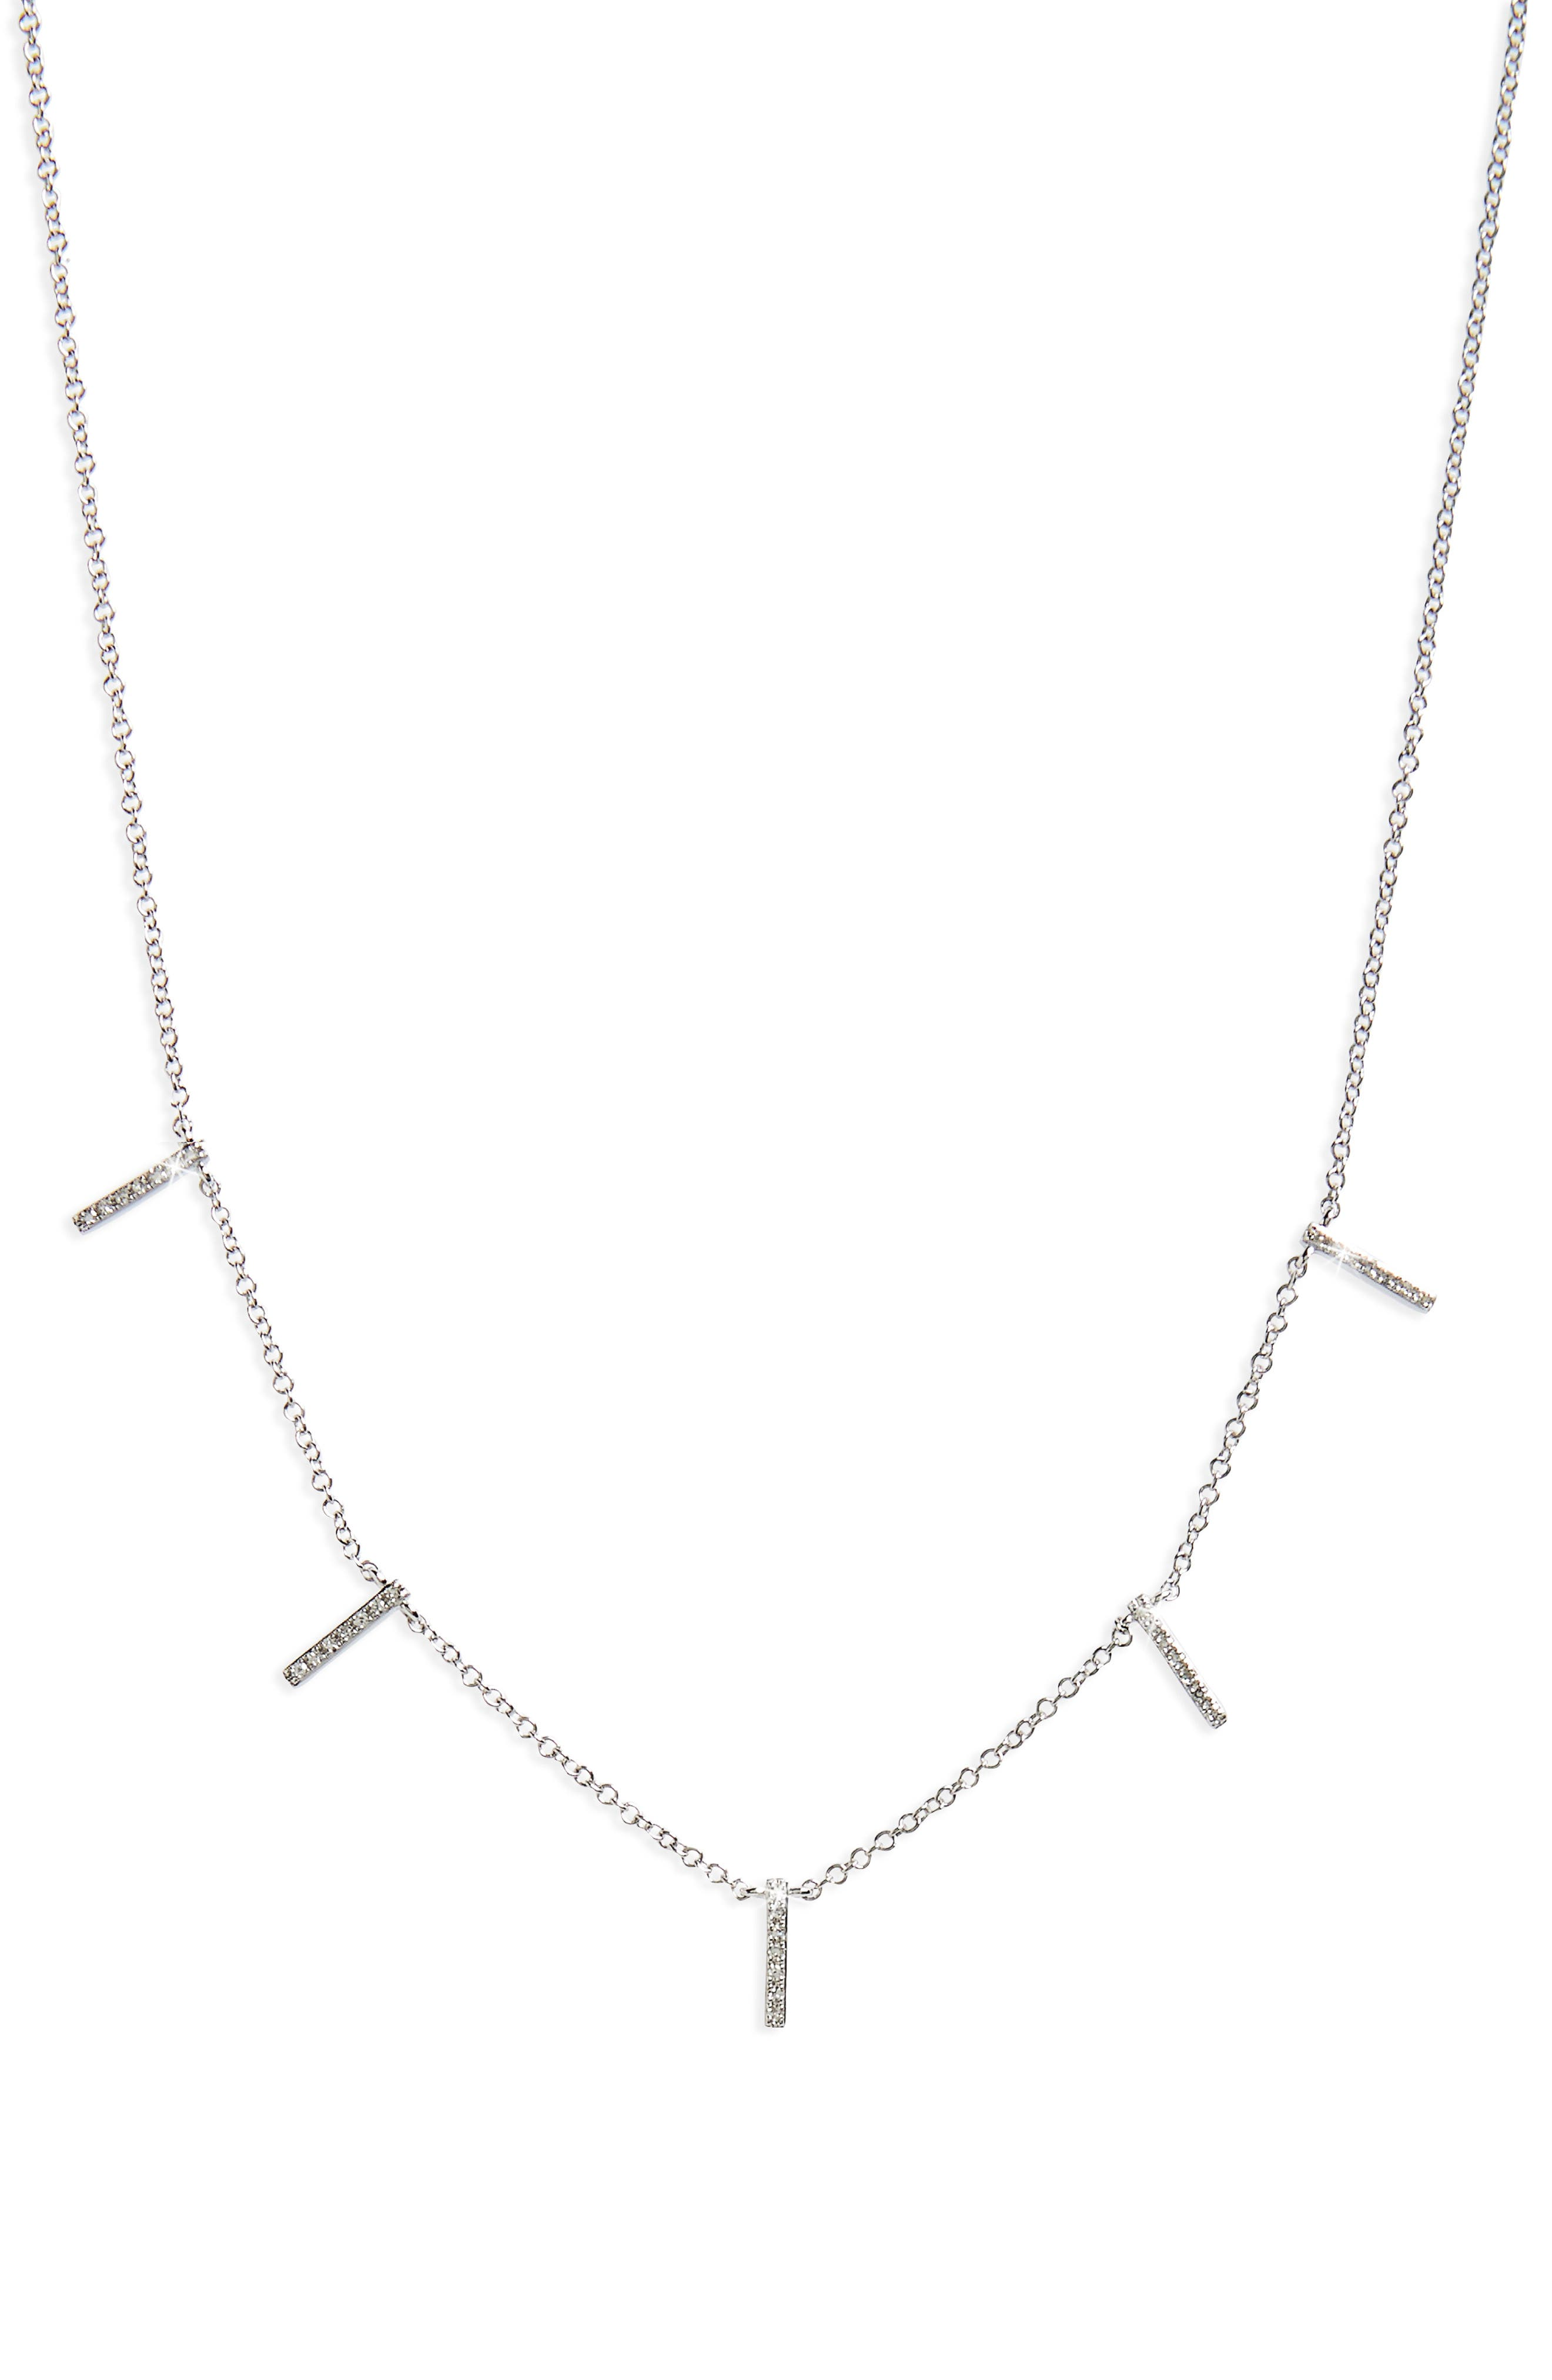 Diamond Collar Necklace,                         Main,                         color, White Gold